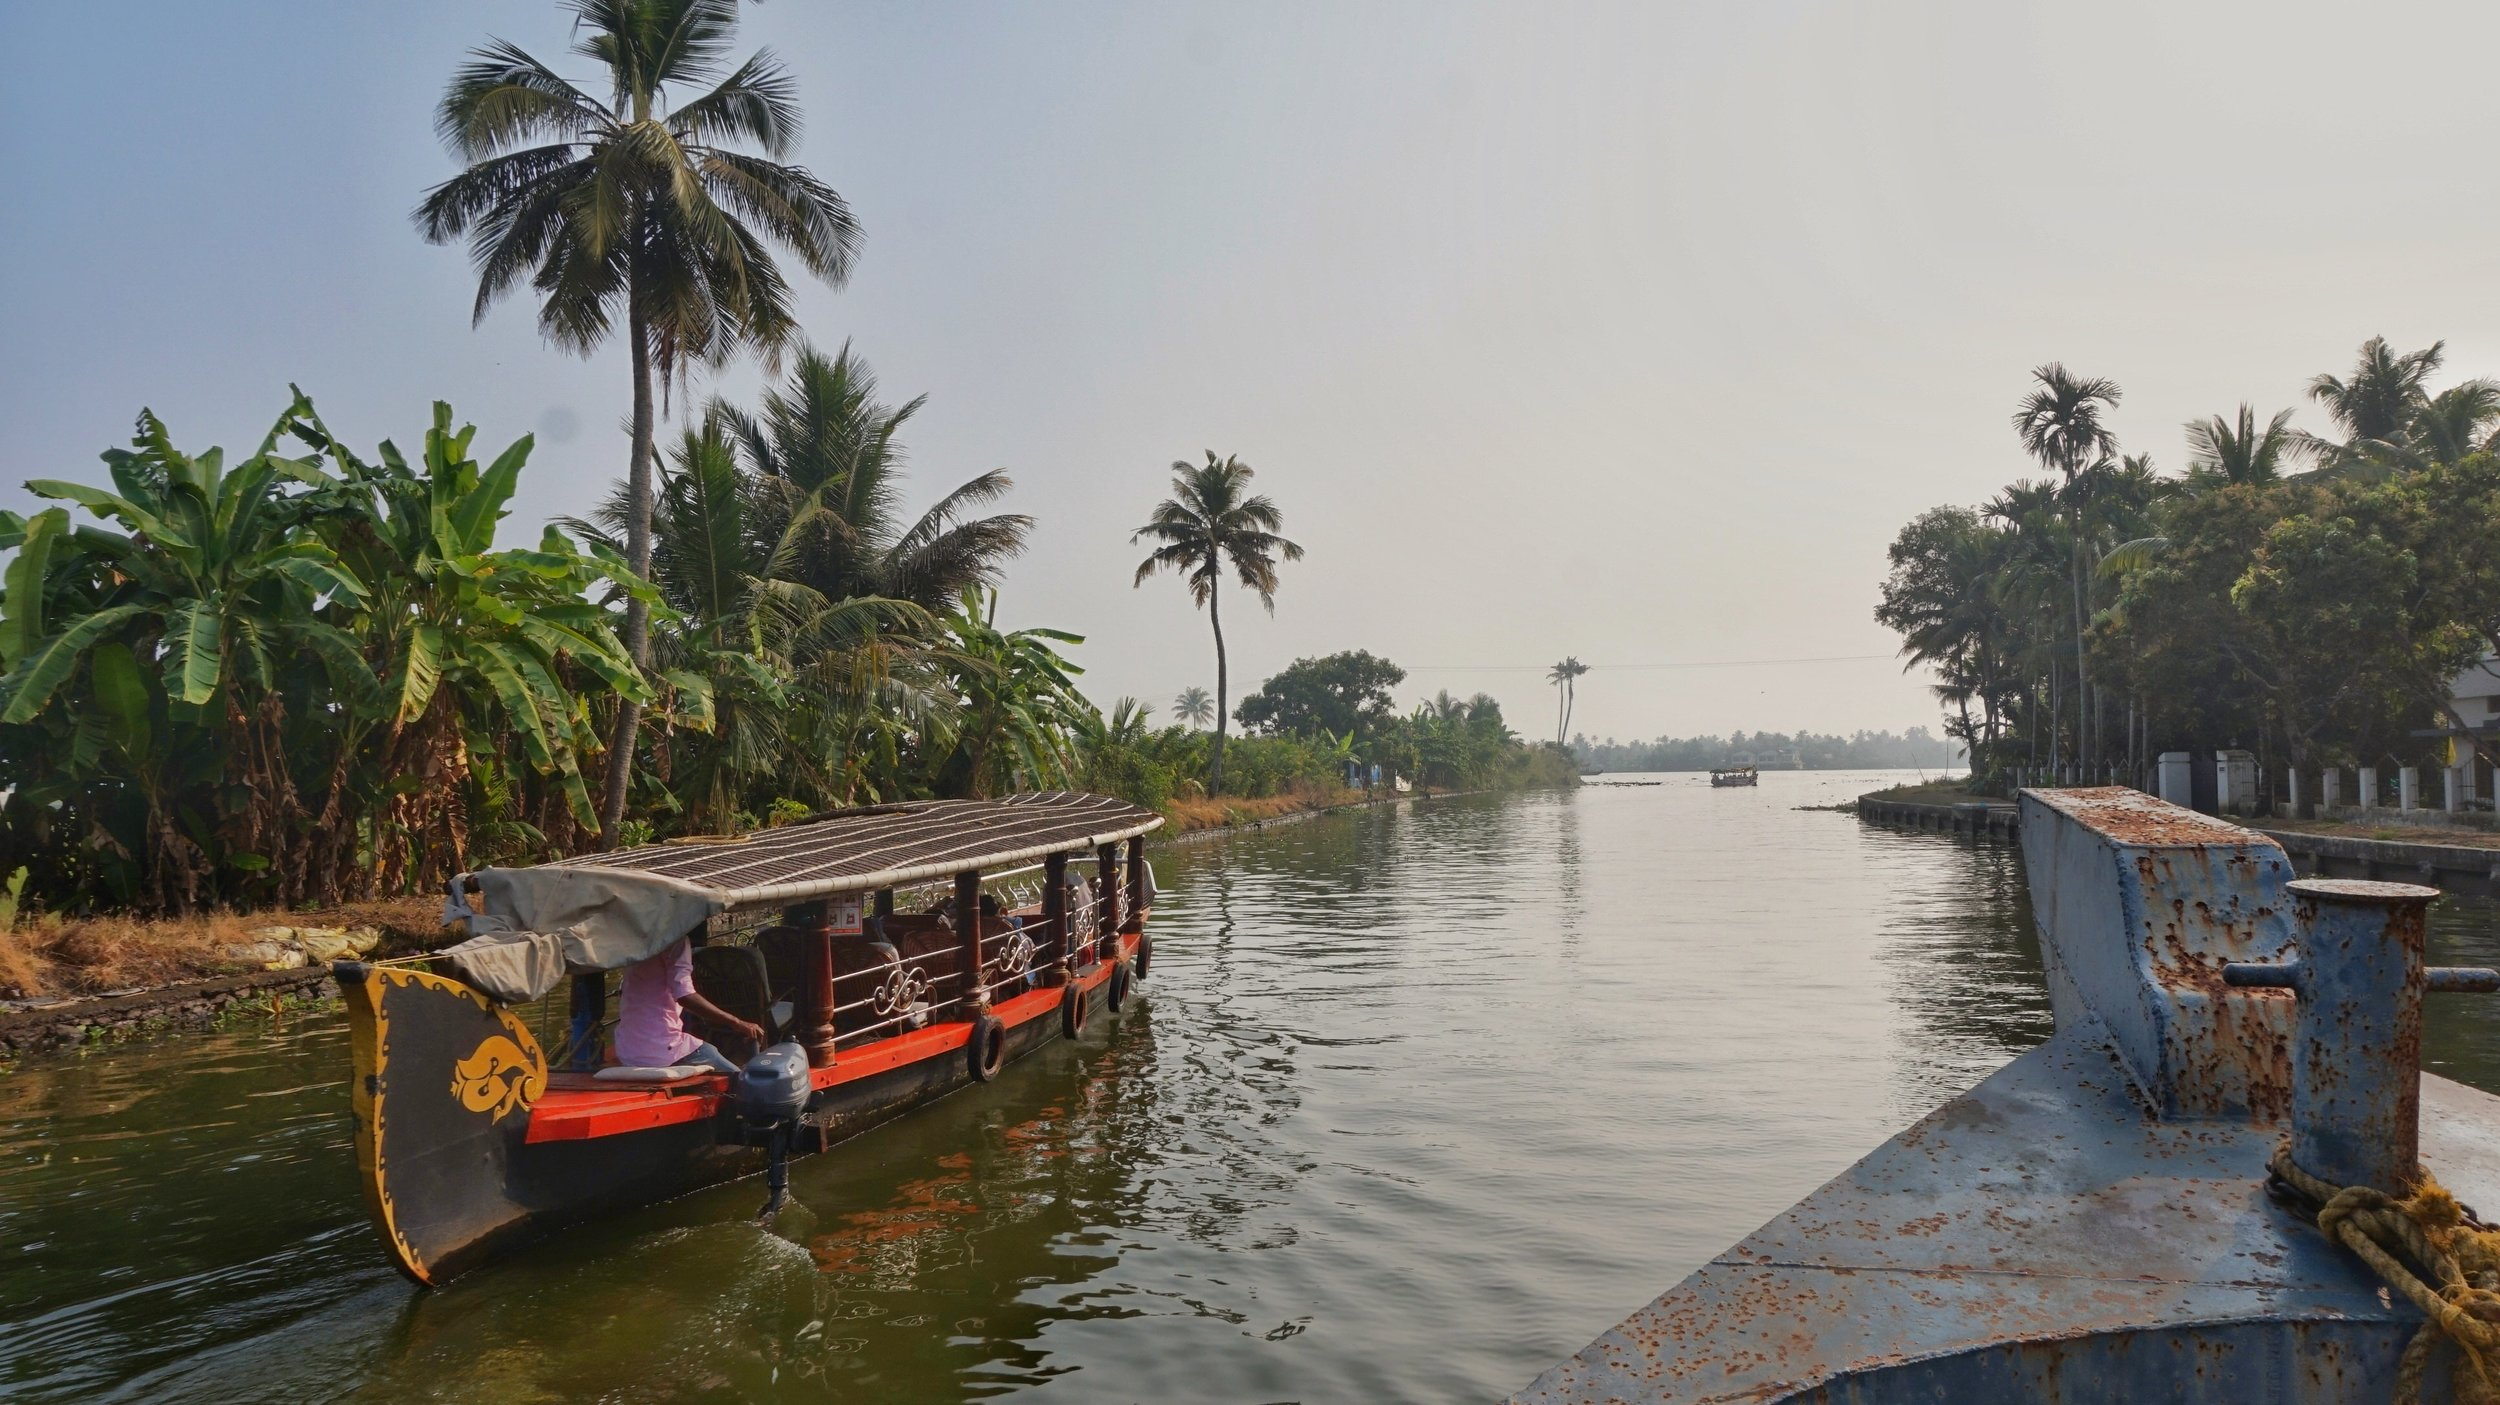 The Alleppey backwaters tour by motorboat is one of the best ways to explore the Alleppey backwaters. Backwaters of Kerala.